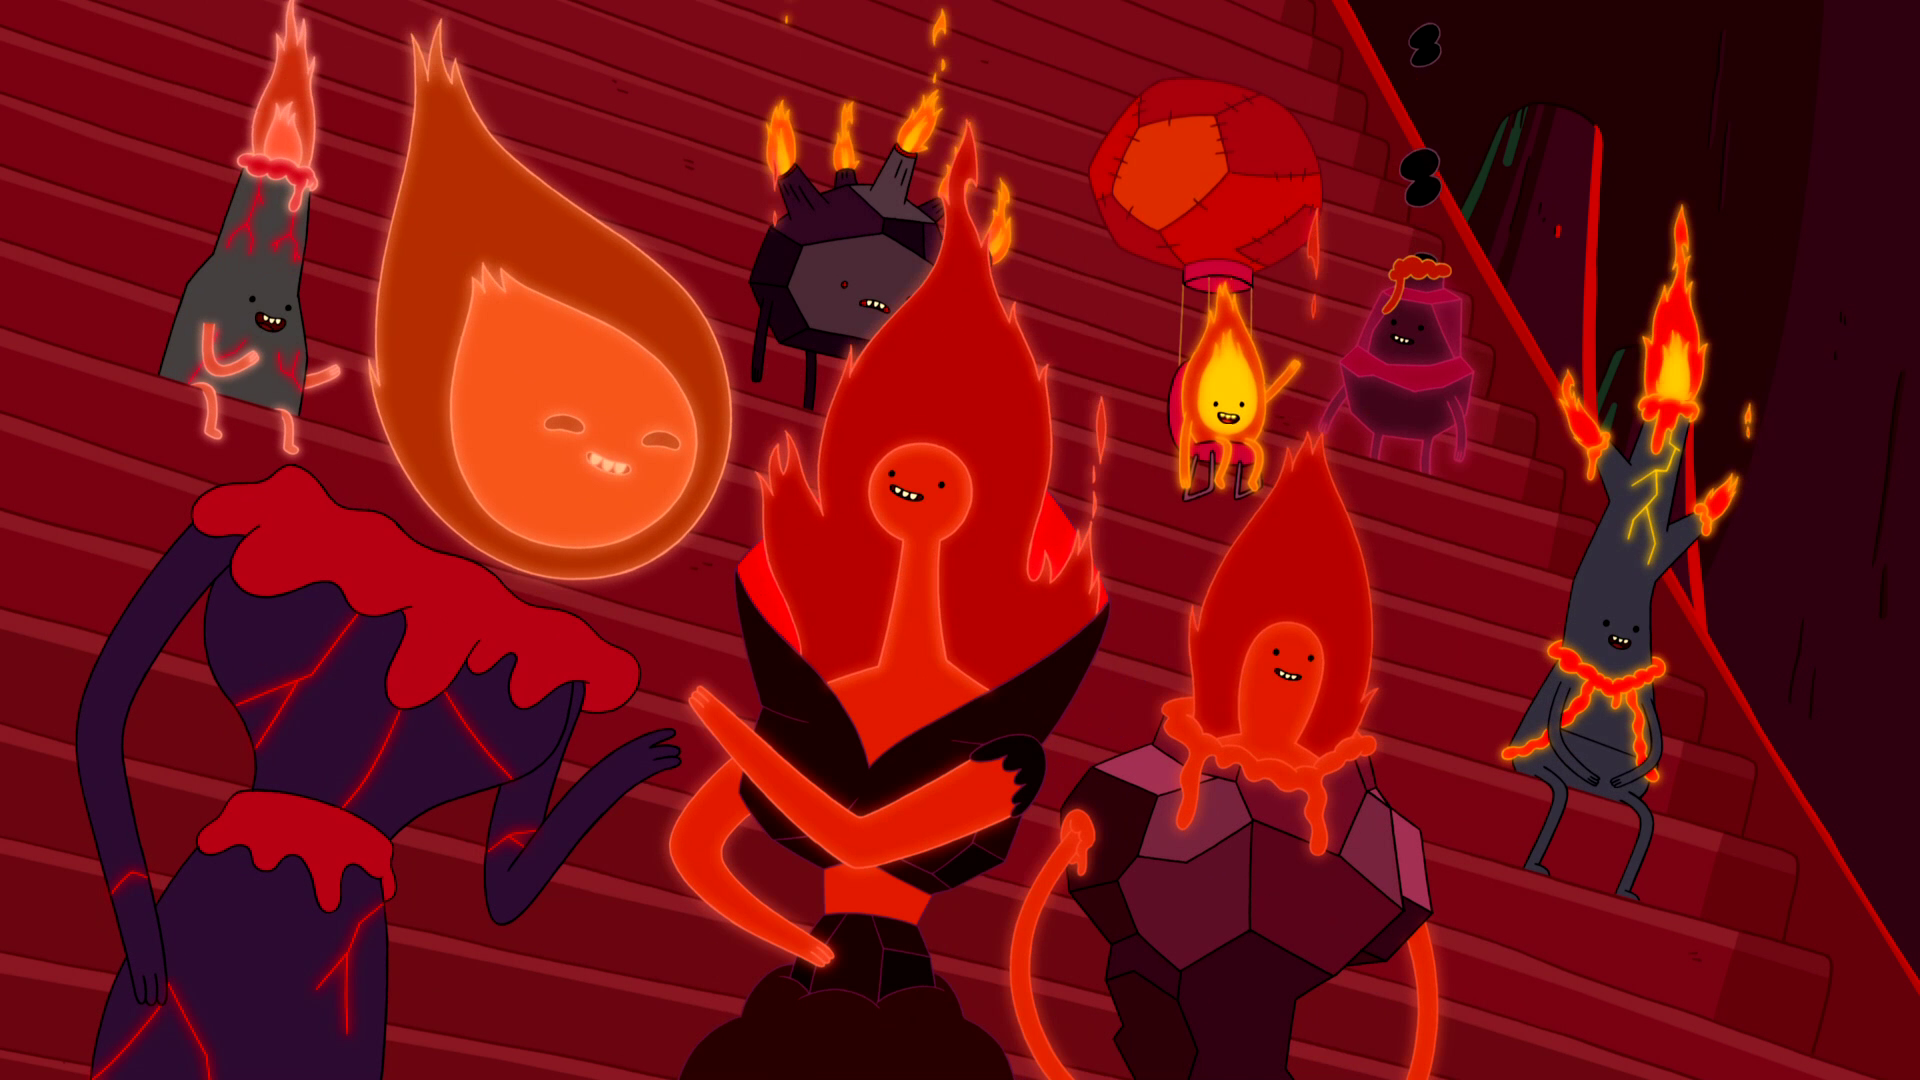 S3e26 Flame Person 1 and 2 talking